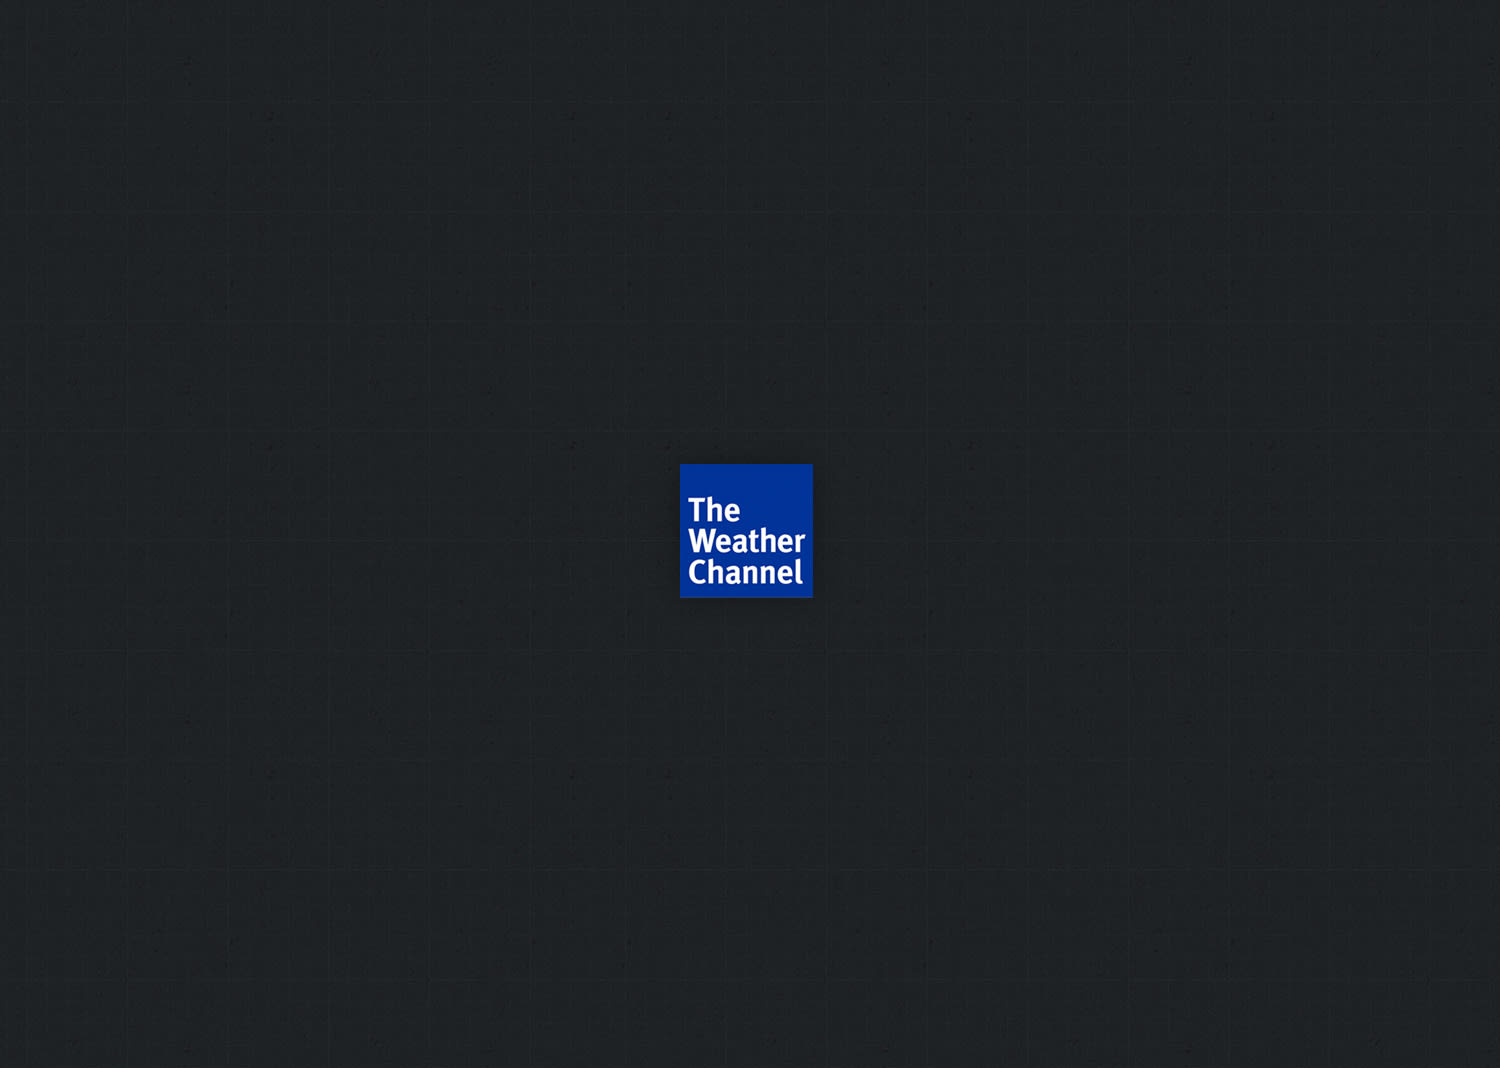 The Weather Channel Rebrand 2014